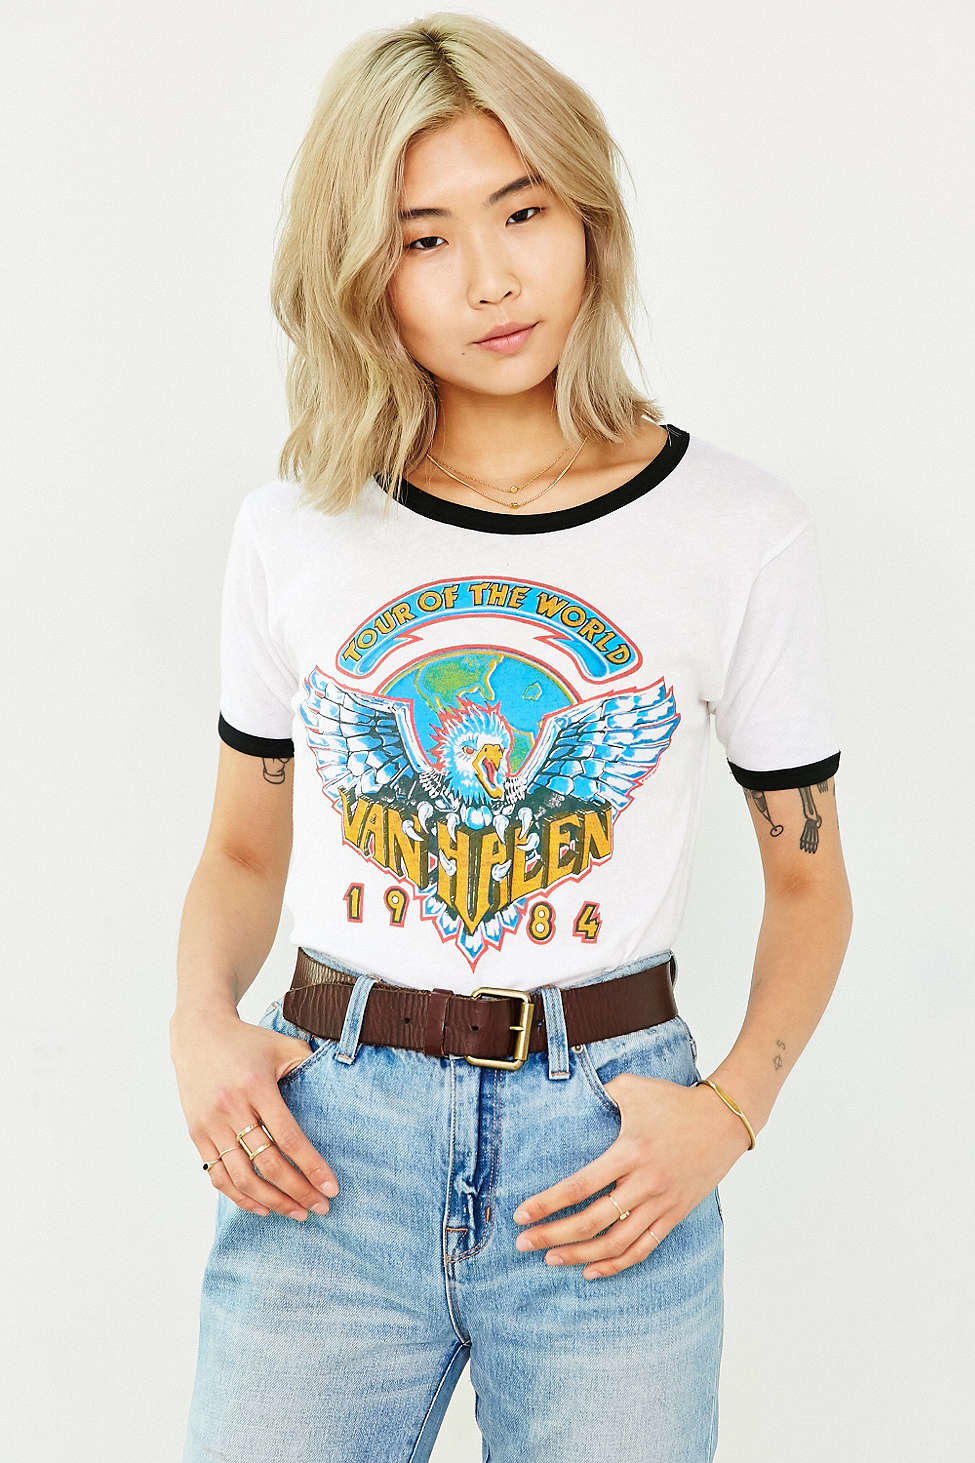 Lyst Urban Outfitters Van Halen World Tour Ringer Tee In